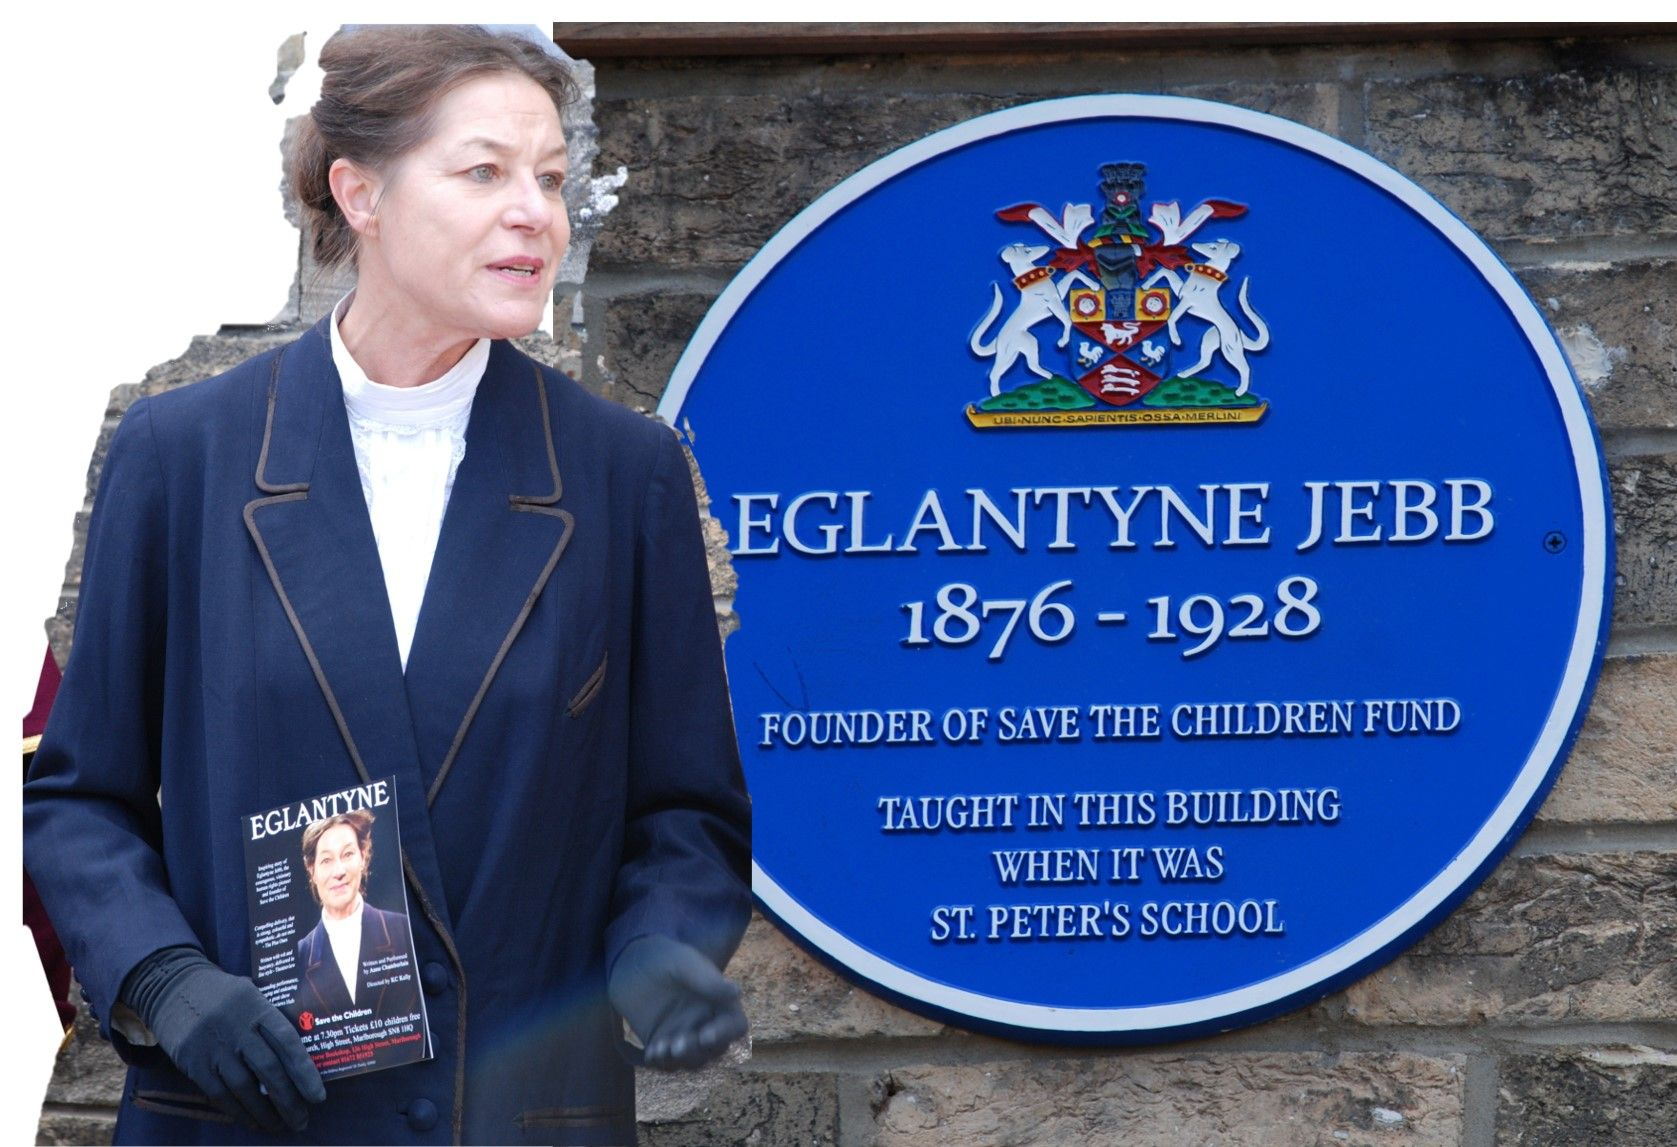 Blue Plaque for Eglantyne Jebb